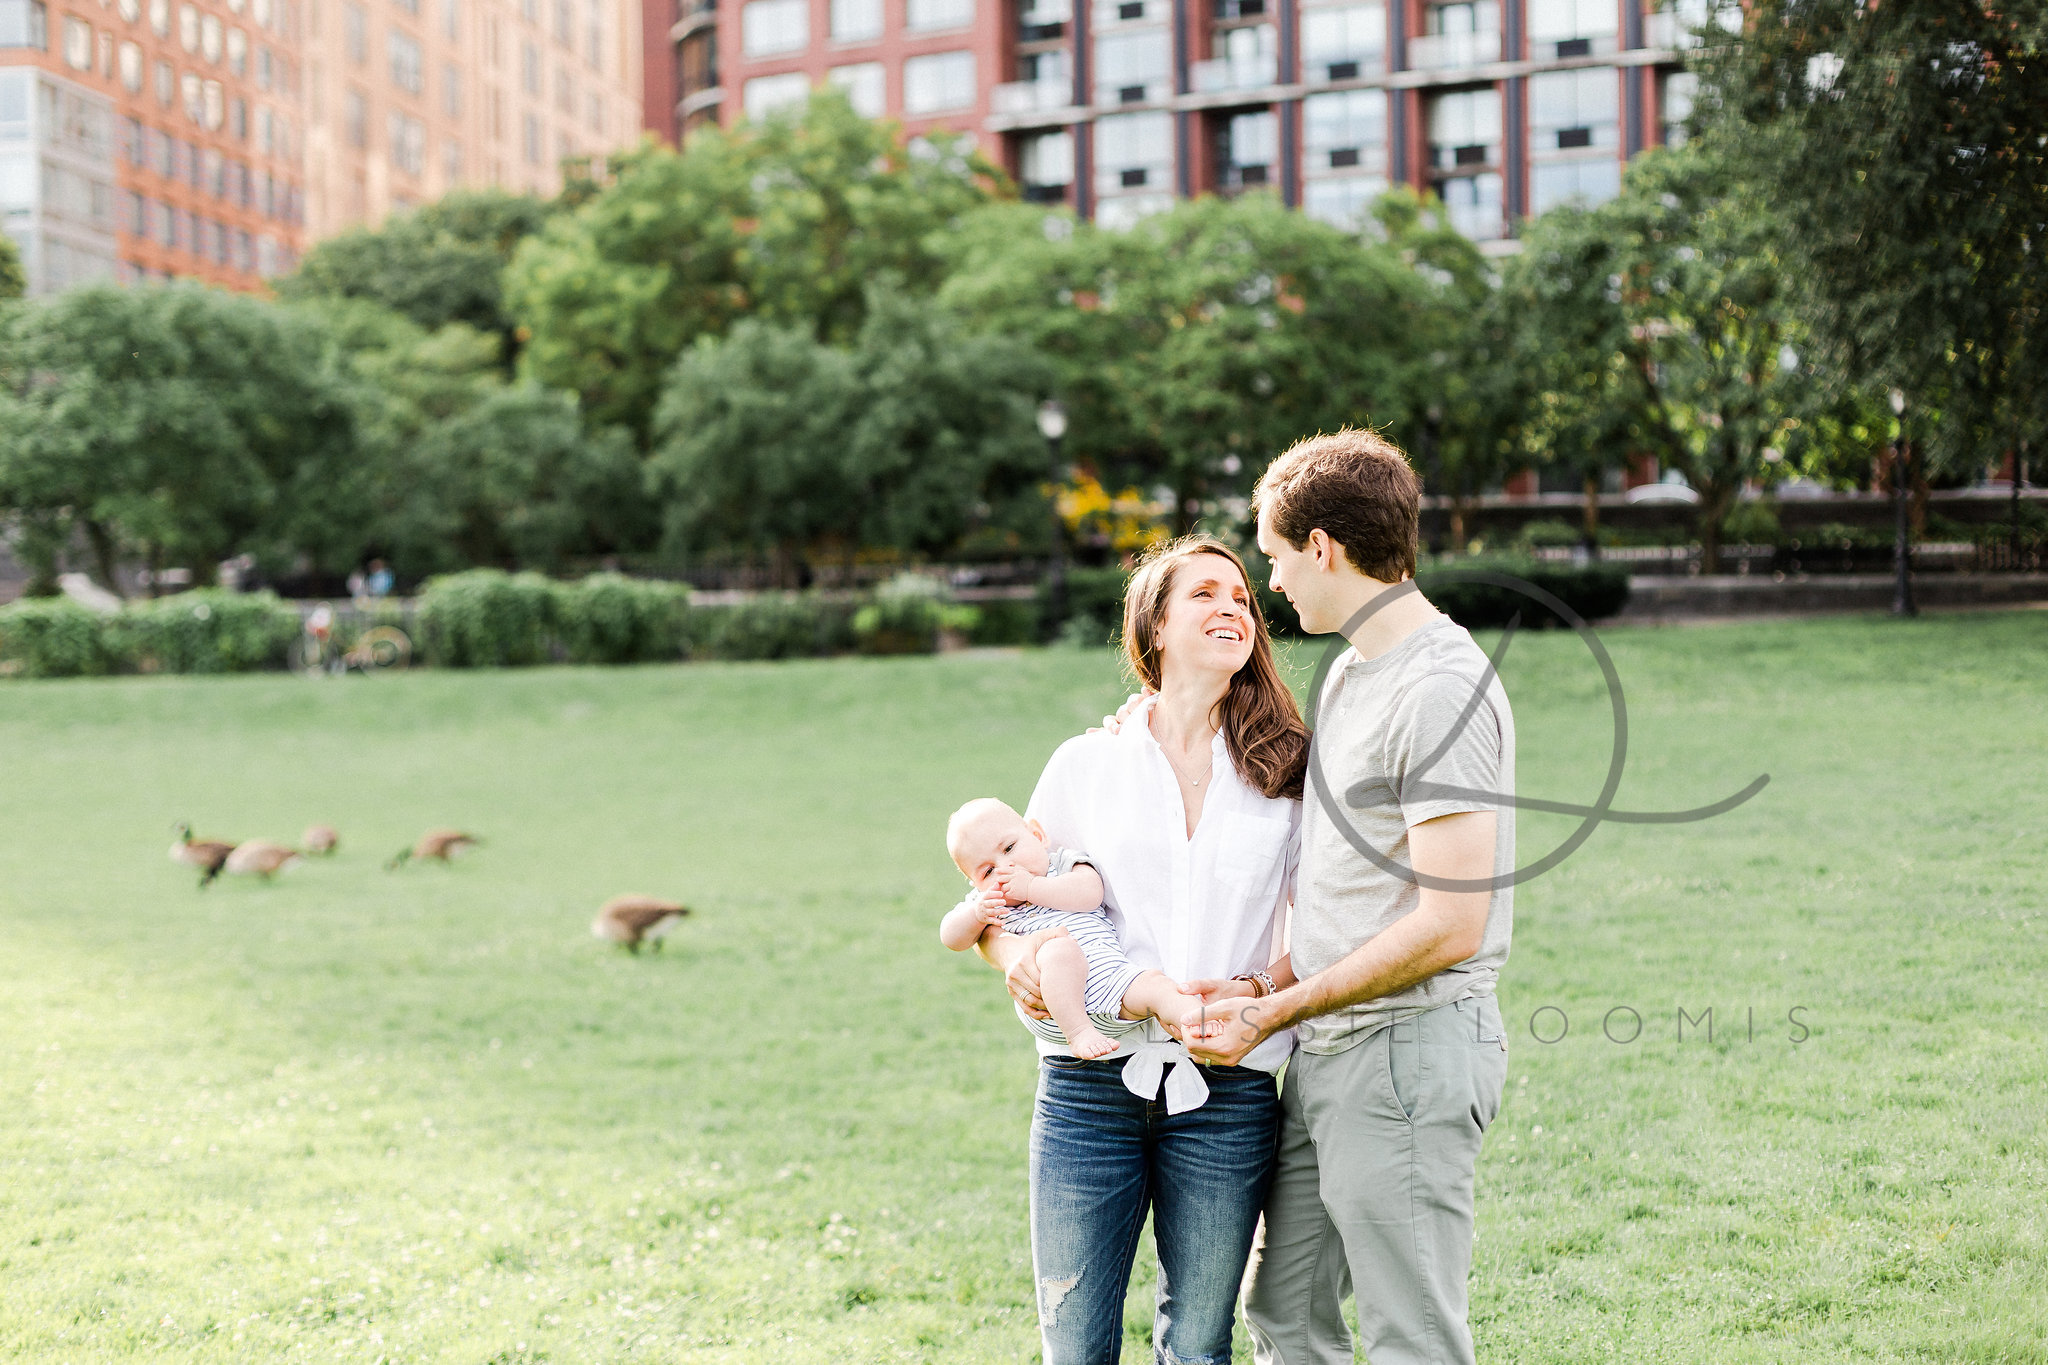 lissie-loomis-photo-newyorkcity-family-photography-baby-photographer-brooklyn50.JPG